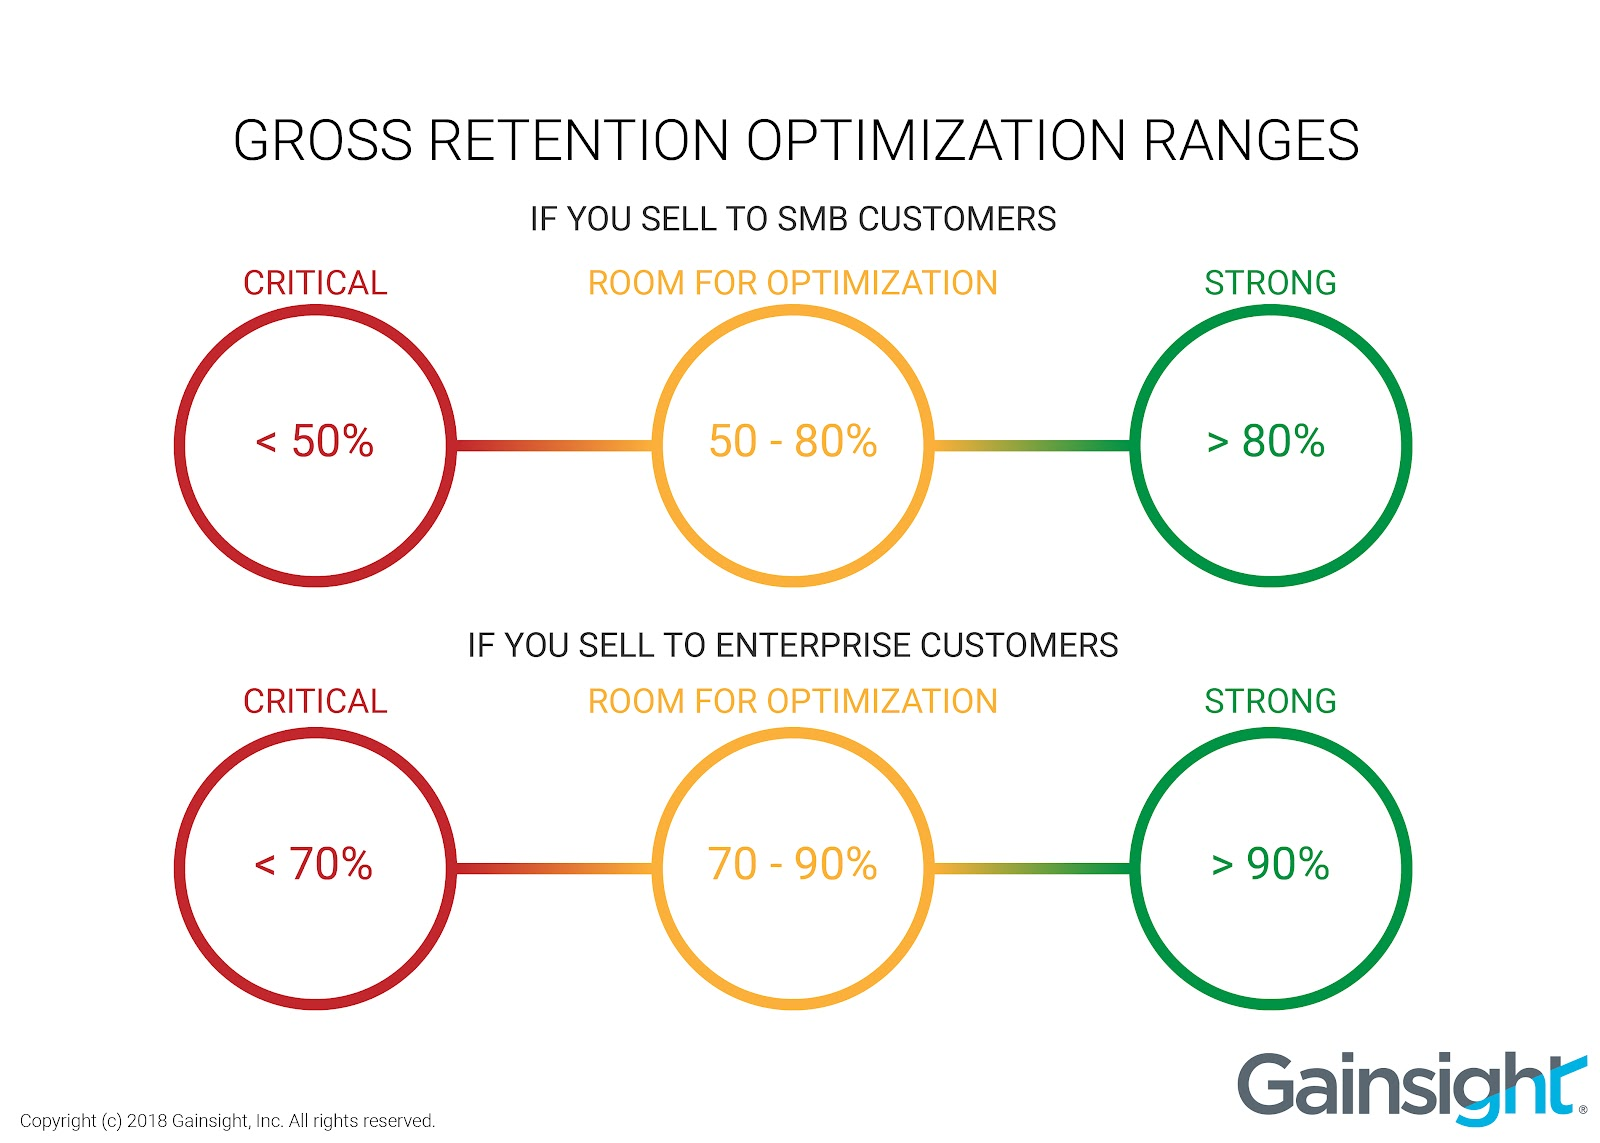 Gross retention optimization ranges